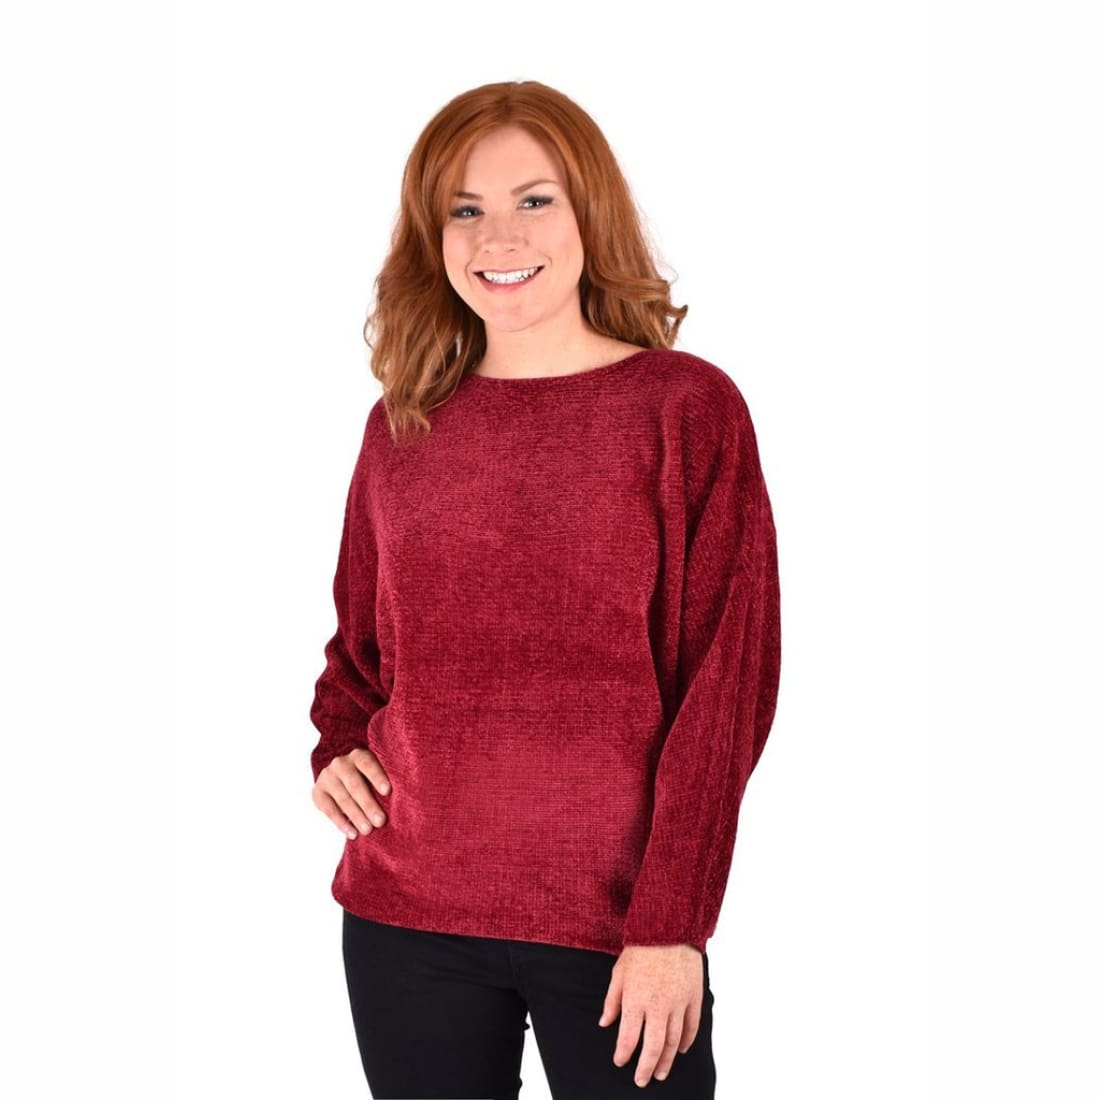 Ethyl Womens The Amari-Garland Chenille Boat Neck Sweater S / Burgundy Sweaters